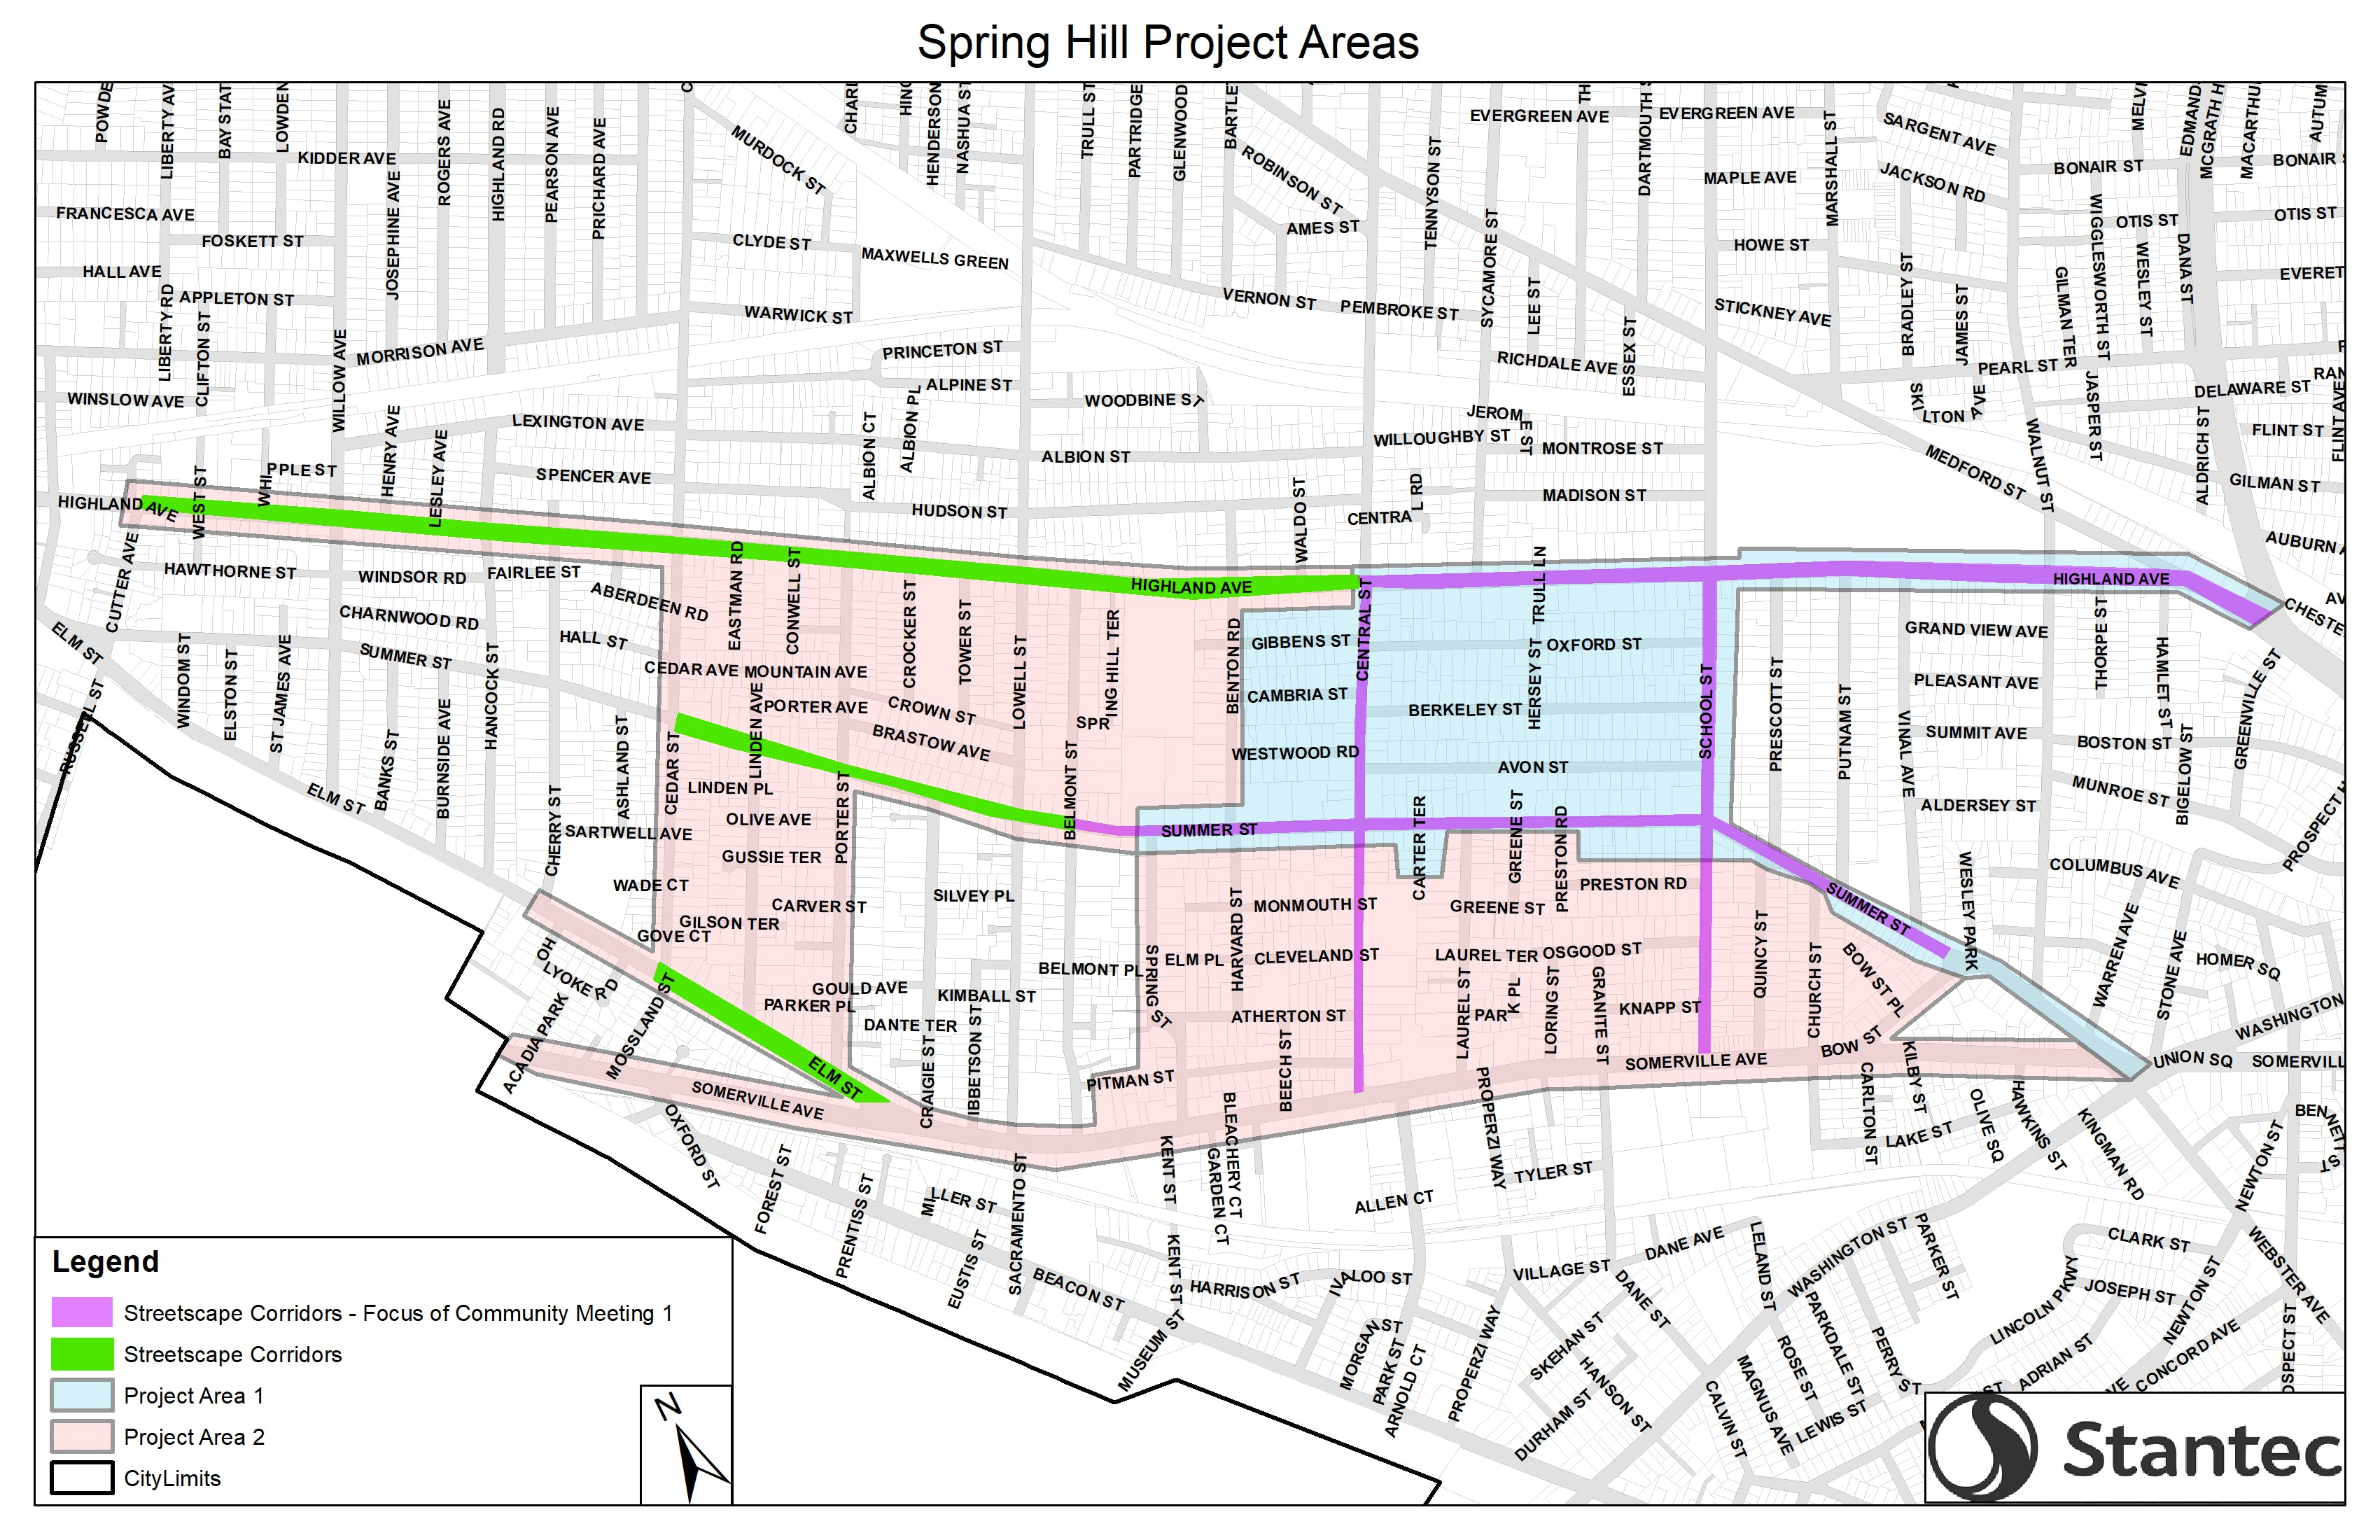 Spring Hill Project Areas